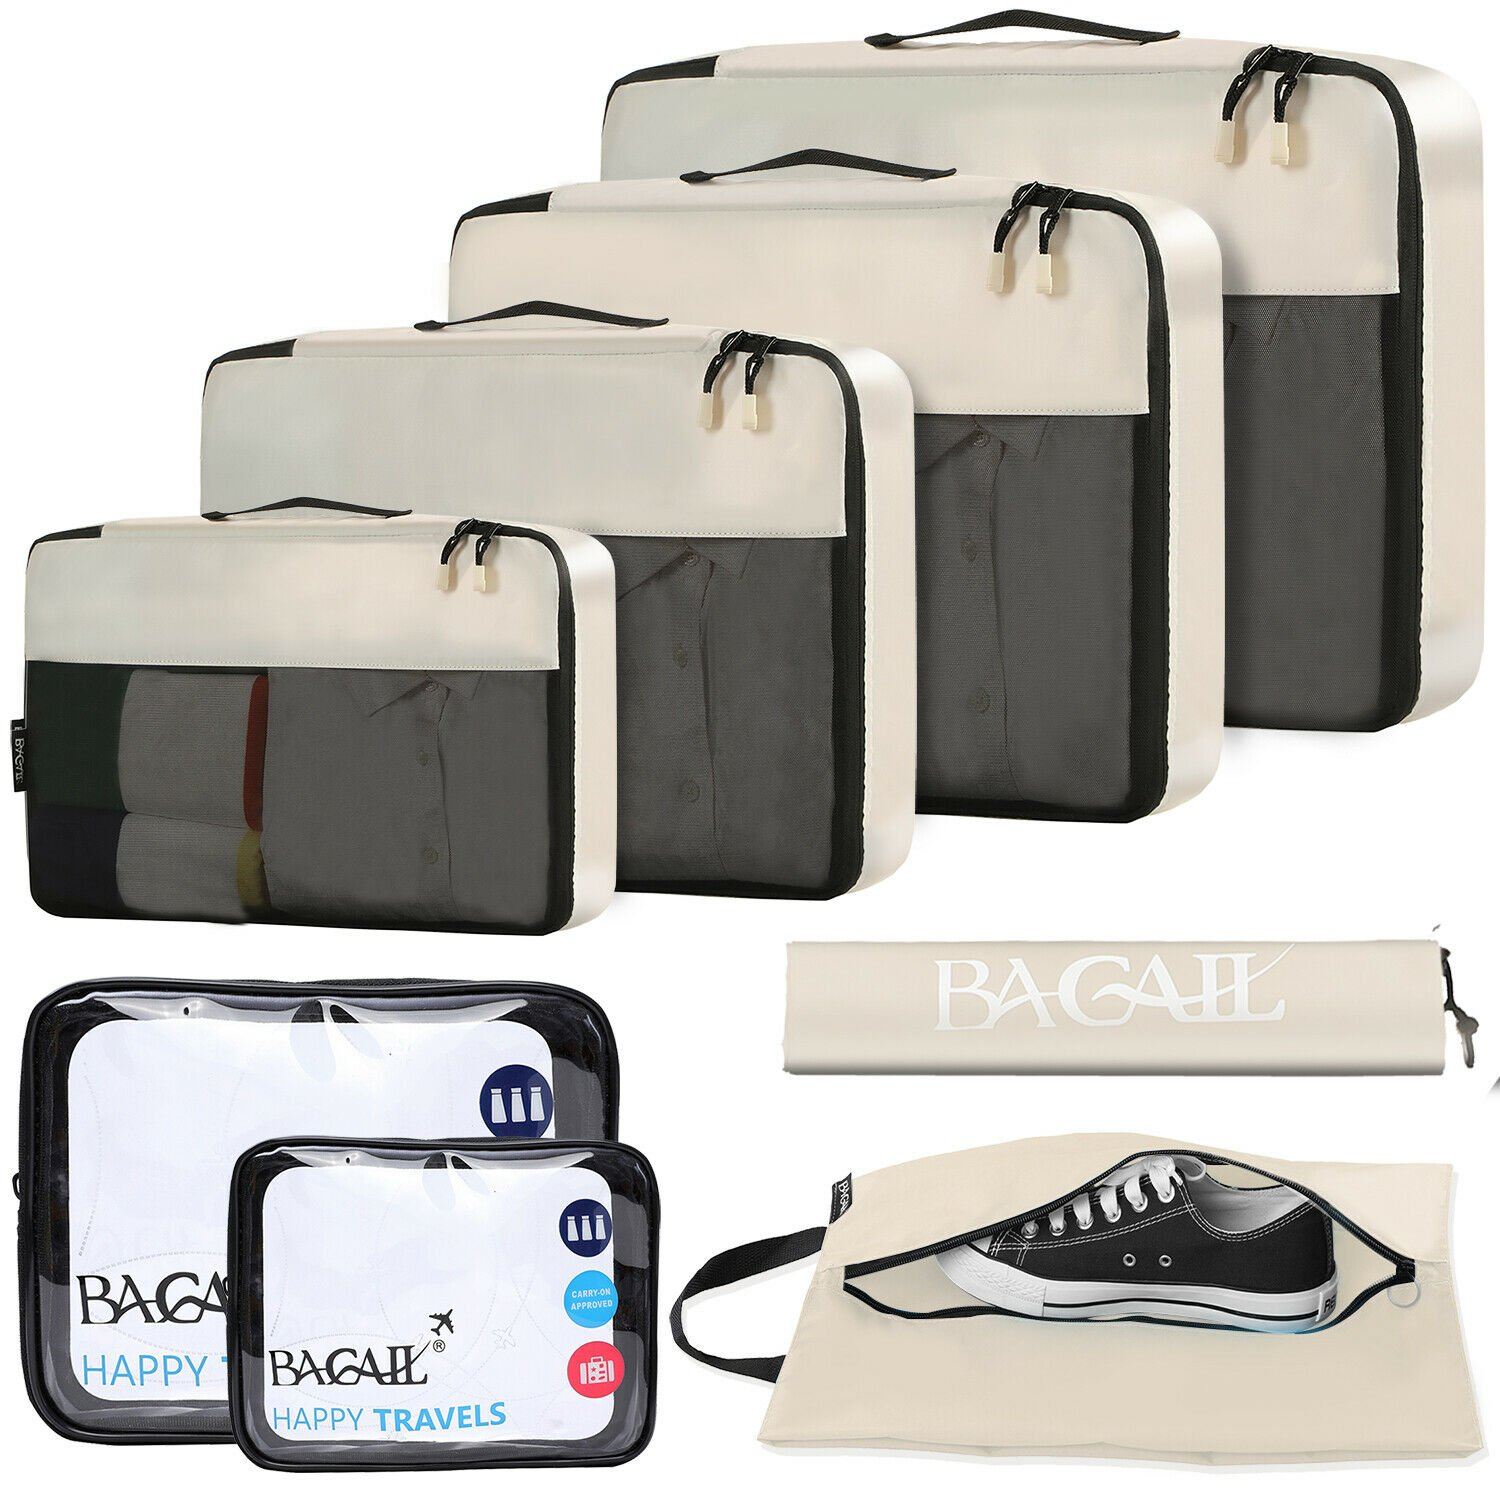 BAGAIL 6 / 8 Set Packing Cubes Luggage Packing Organizers for Travel S...